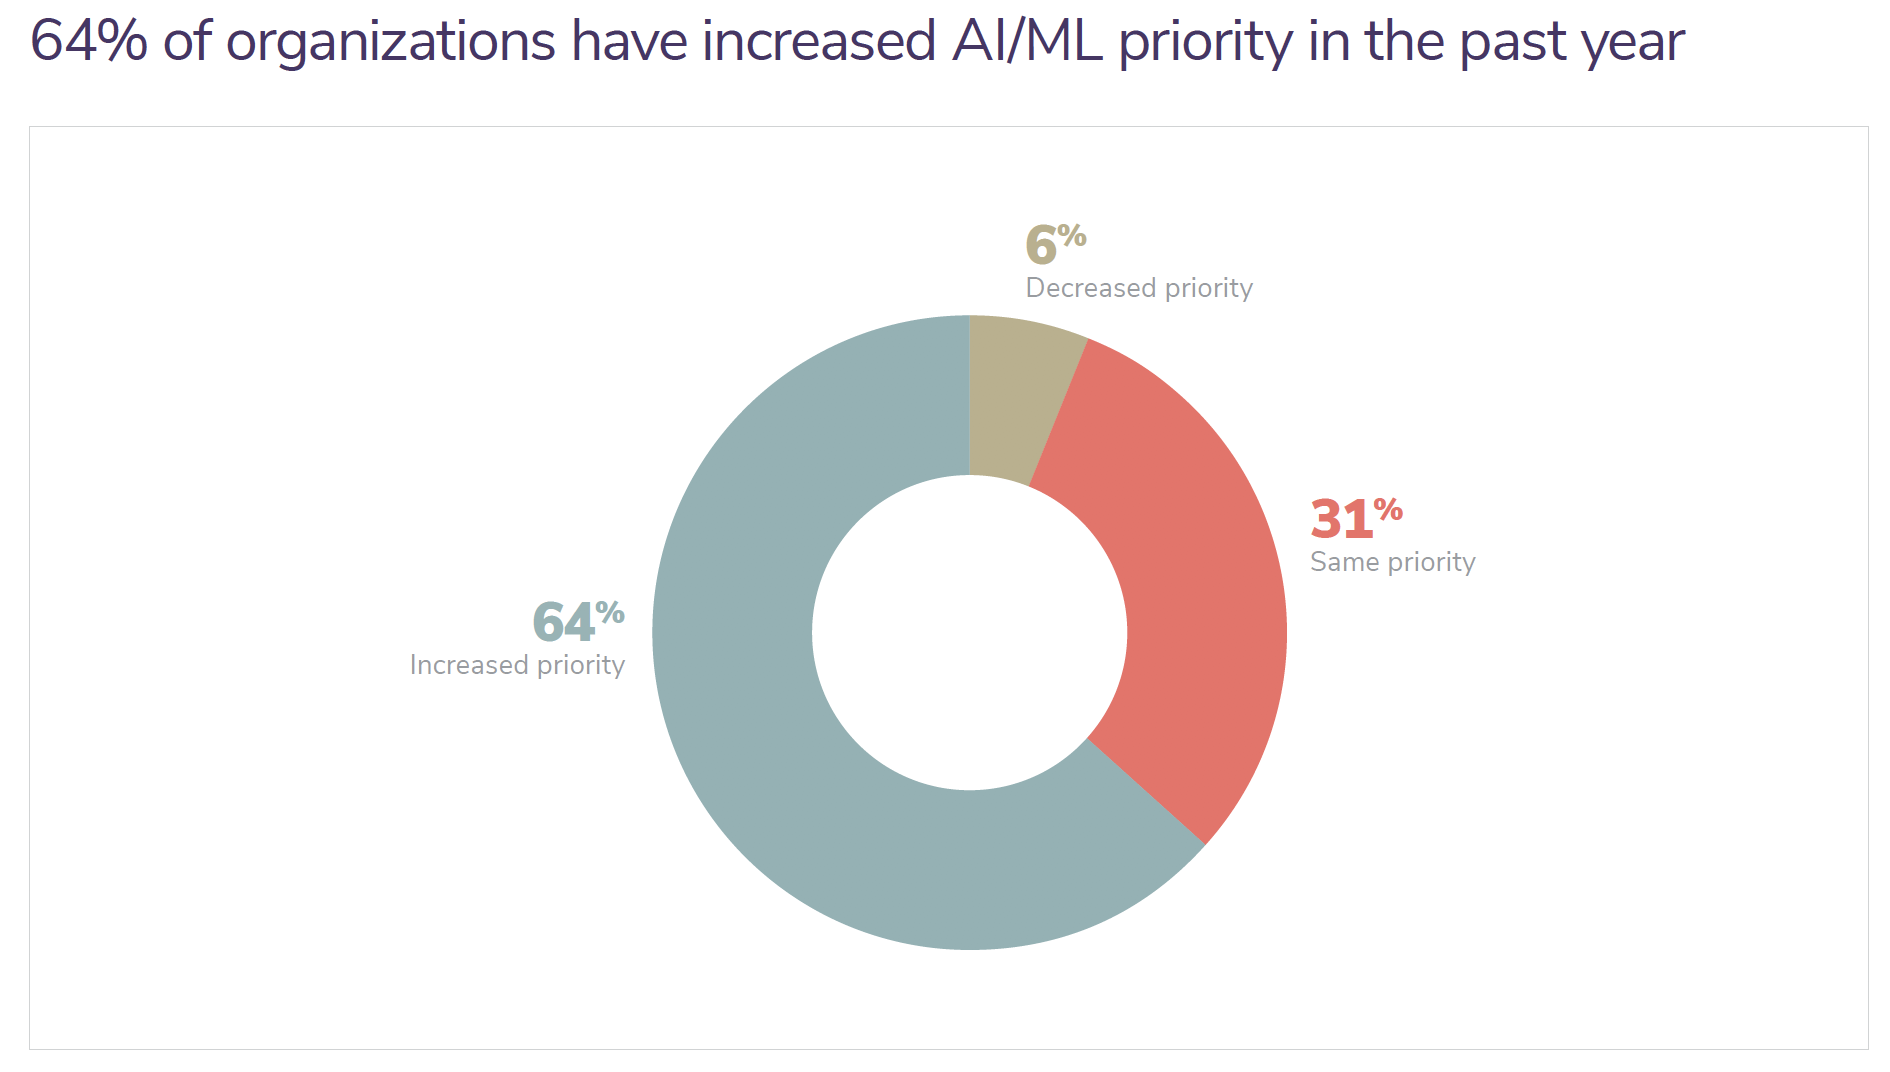 64% of organizations have increased AI/ML priority in the past year